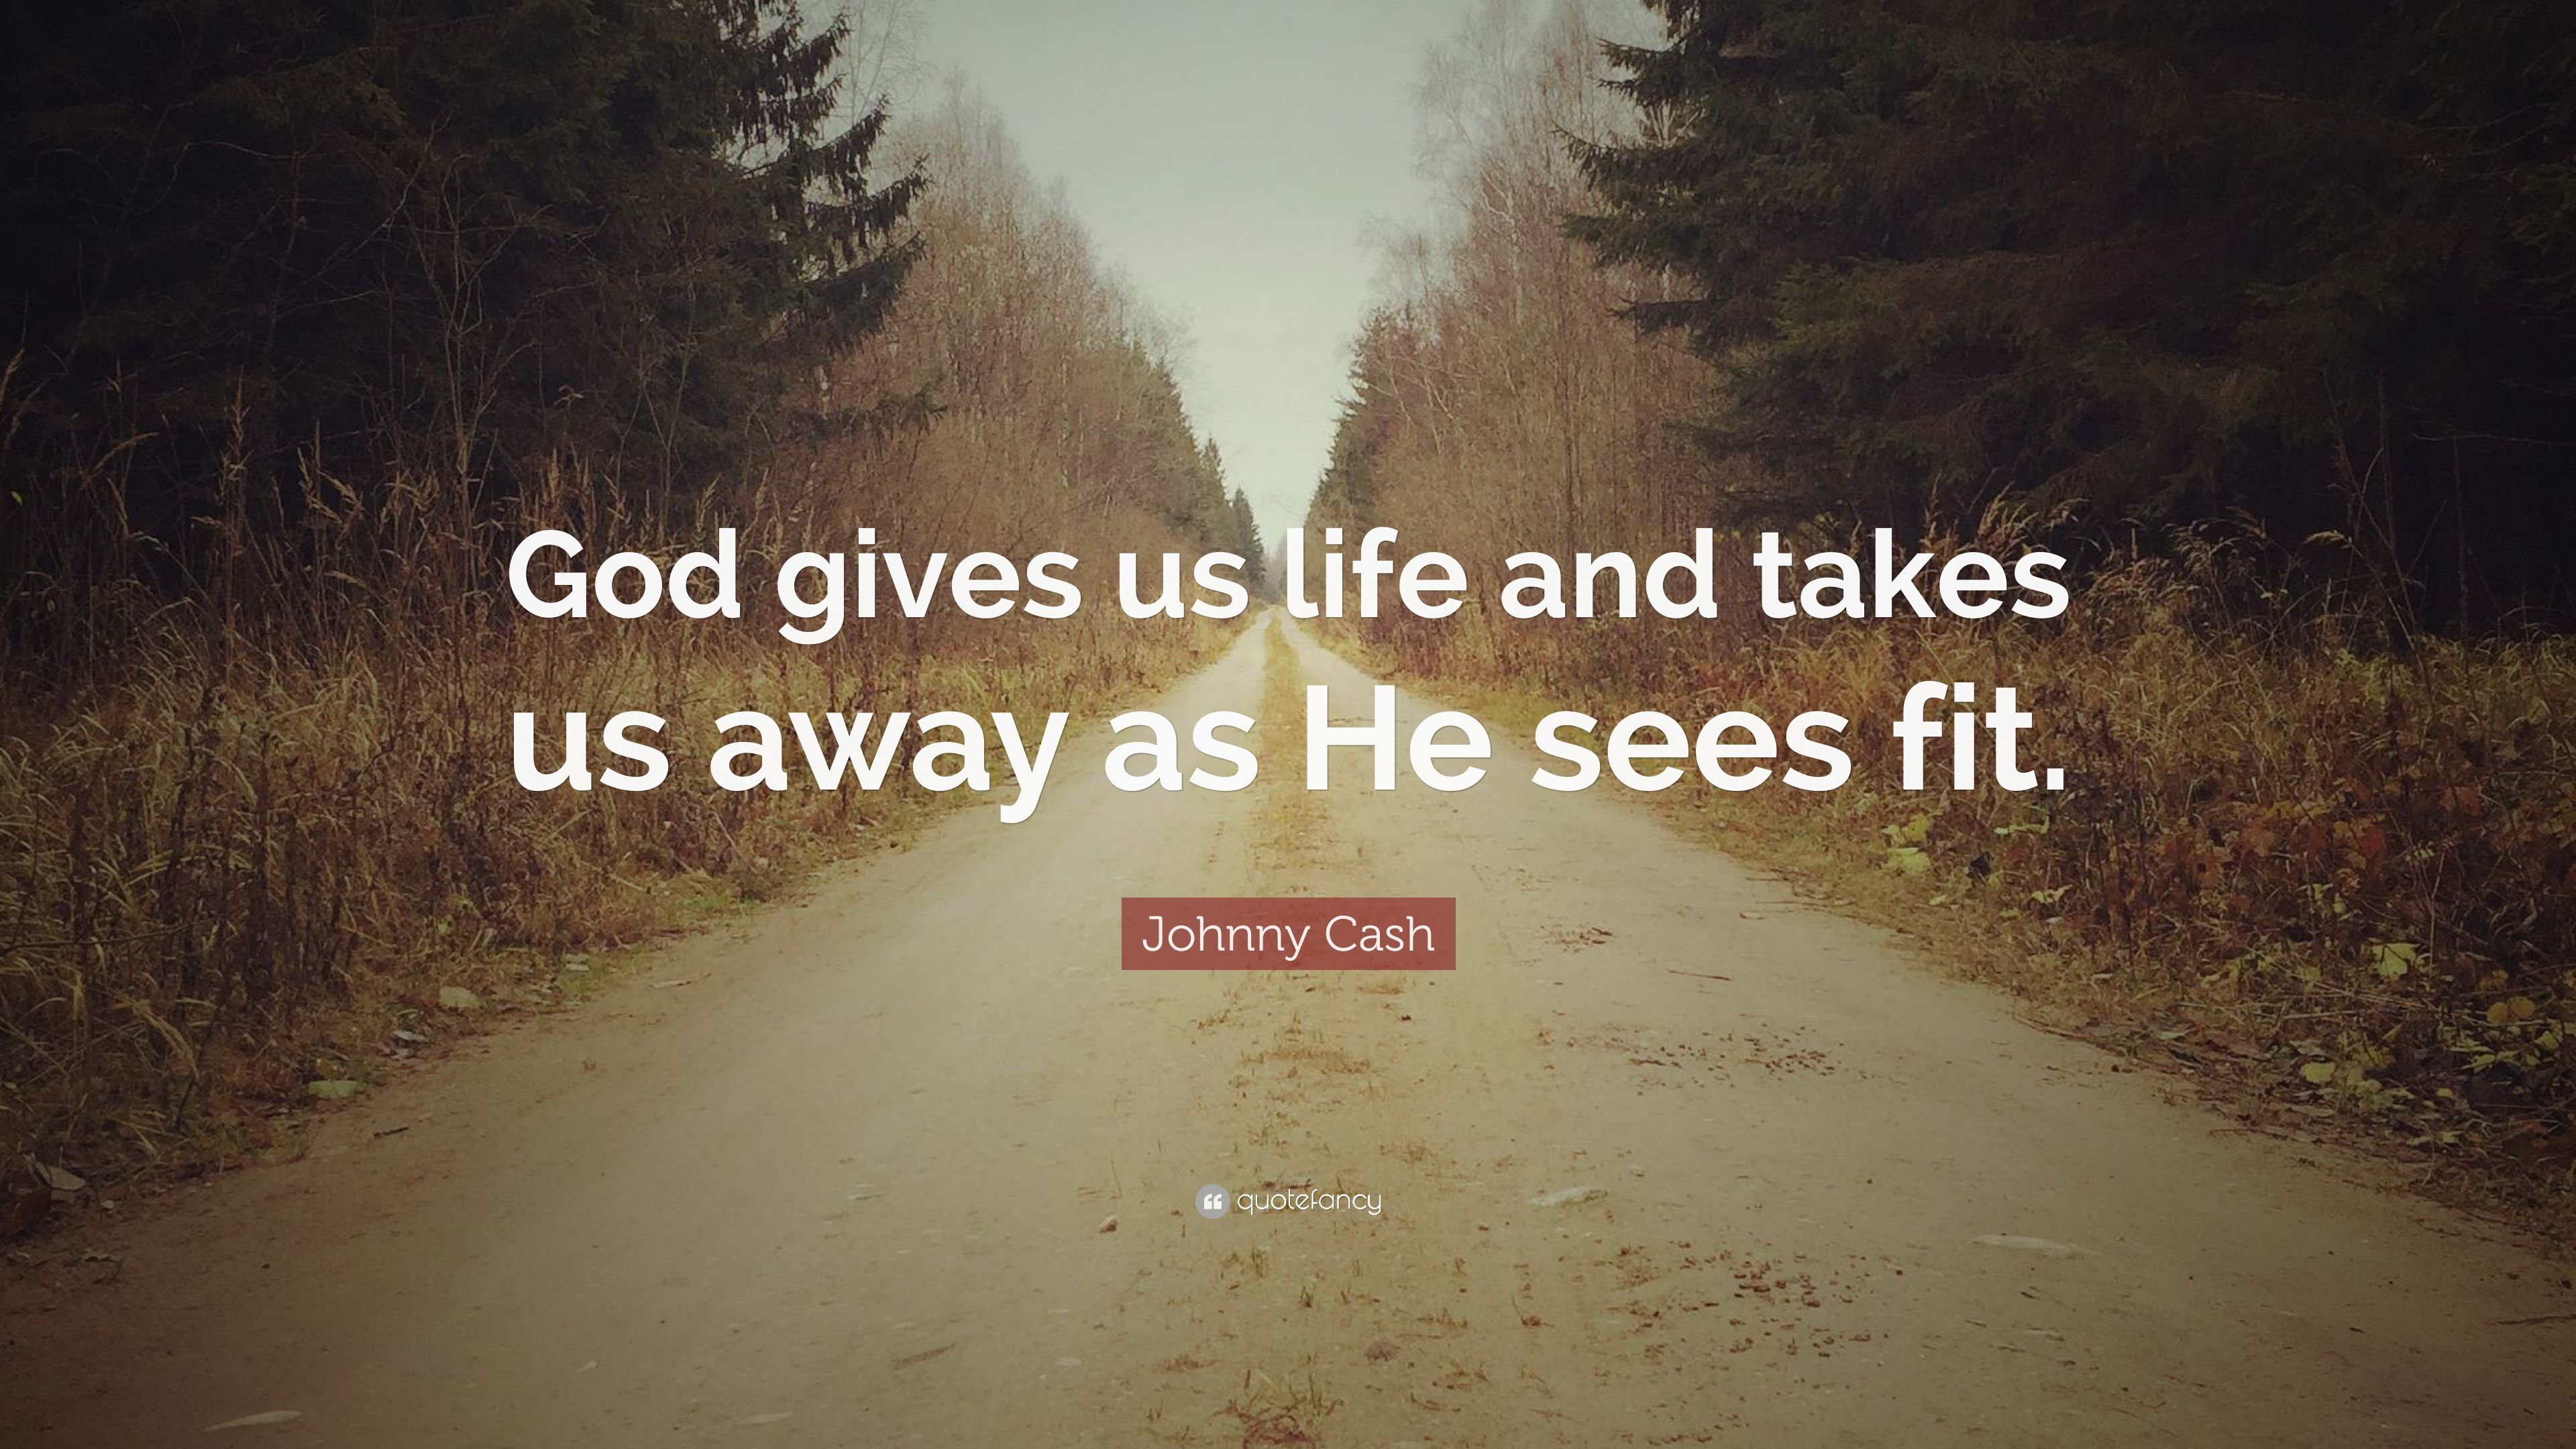 god gives life and he takes it away